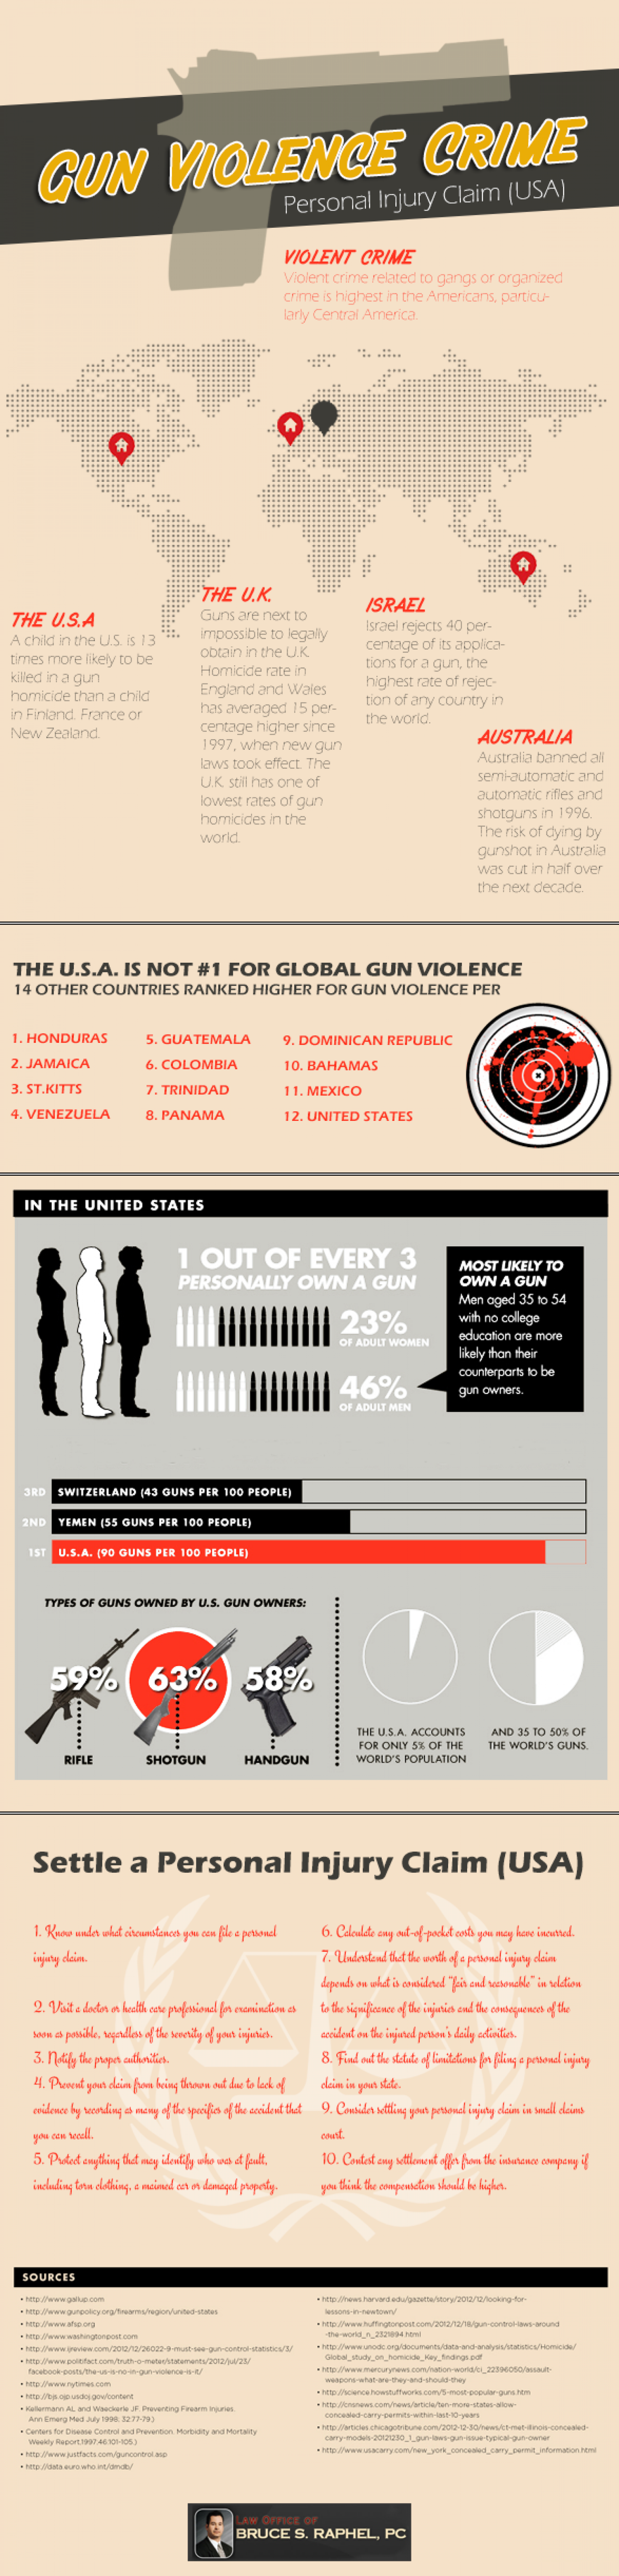 Gun Violence Crime Personal Injury Claim (USA) Infographic